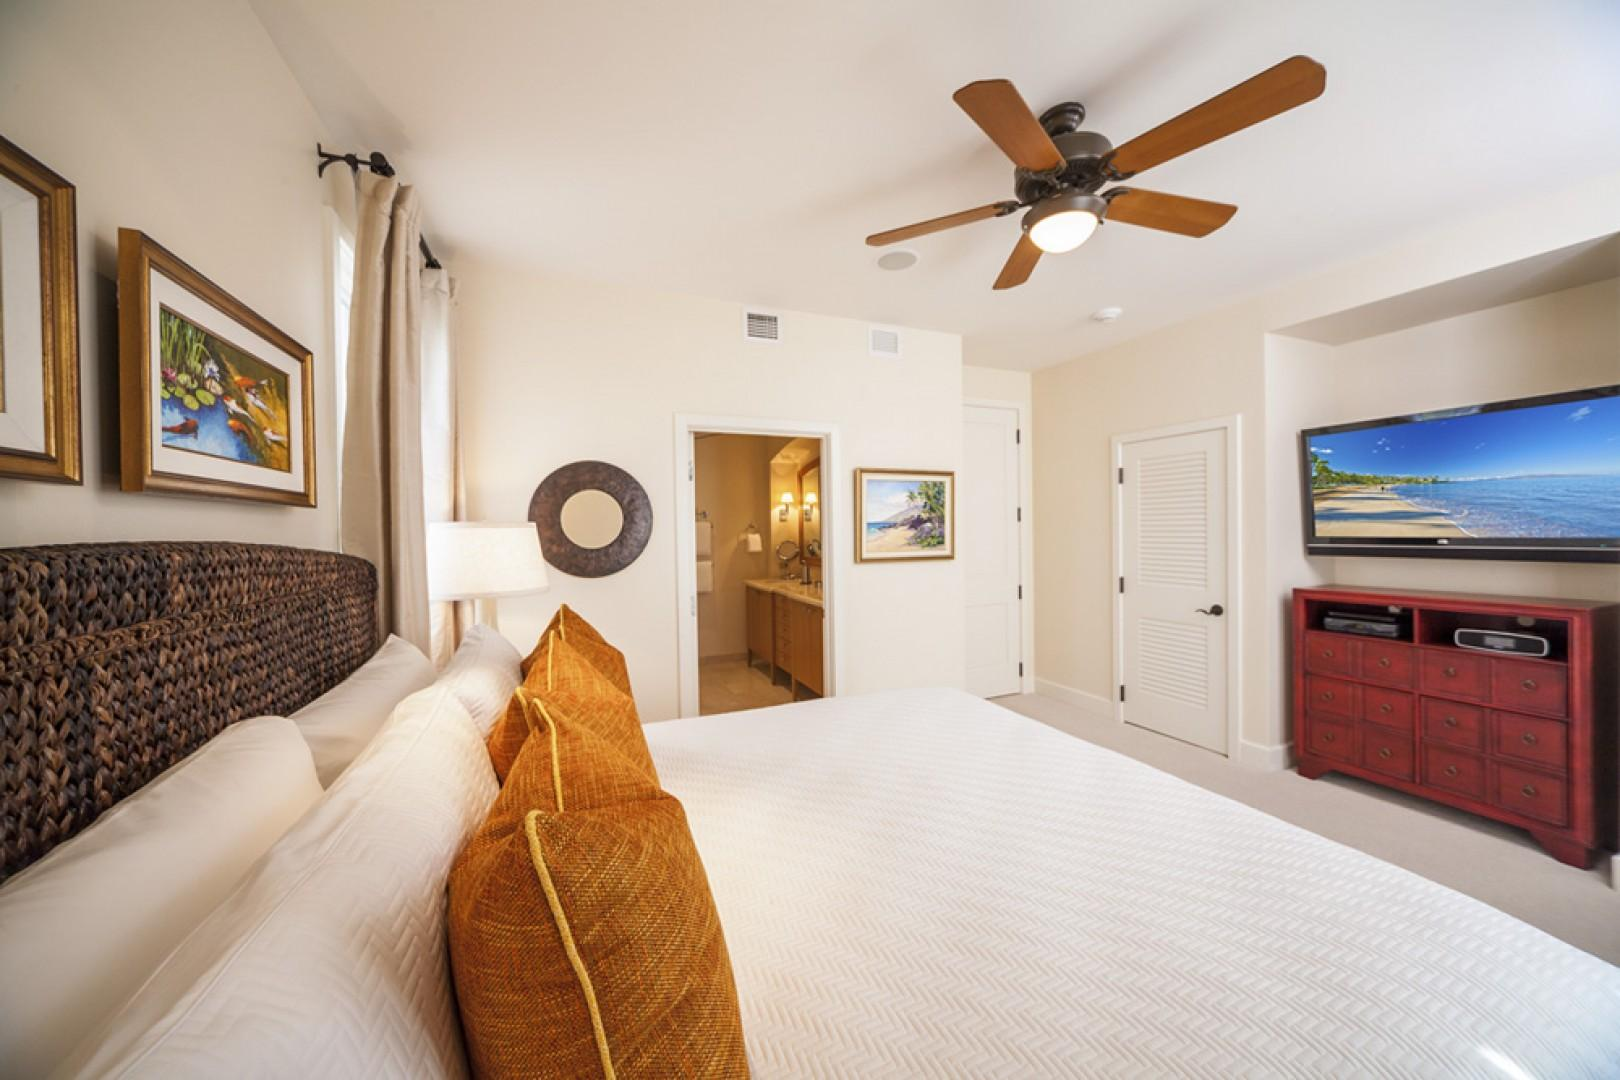 Second master bedroom, with king-size bed and large TV.